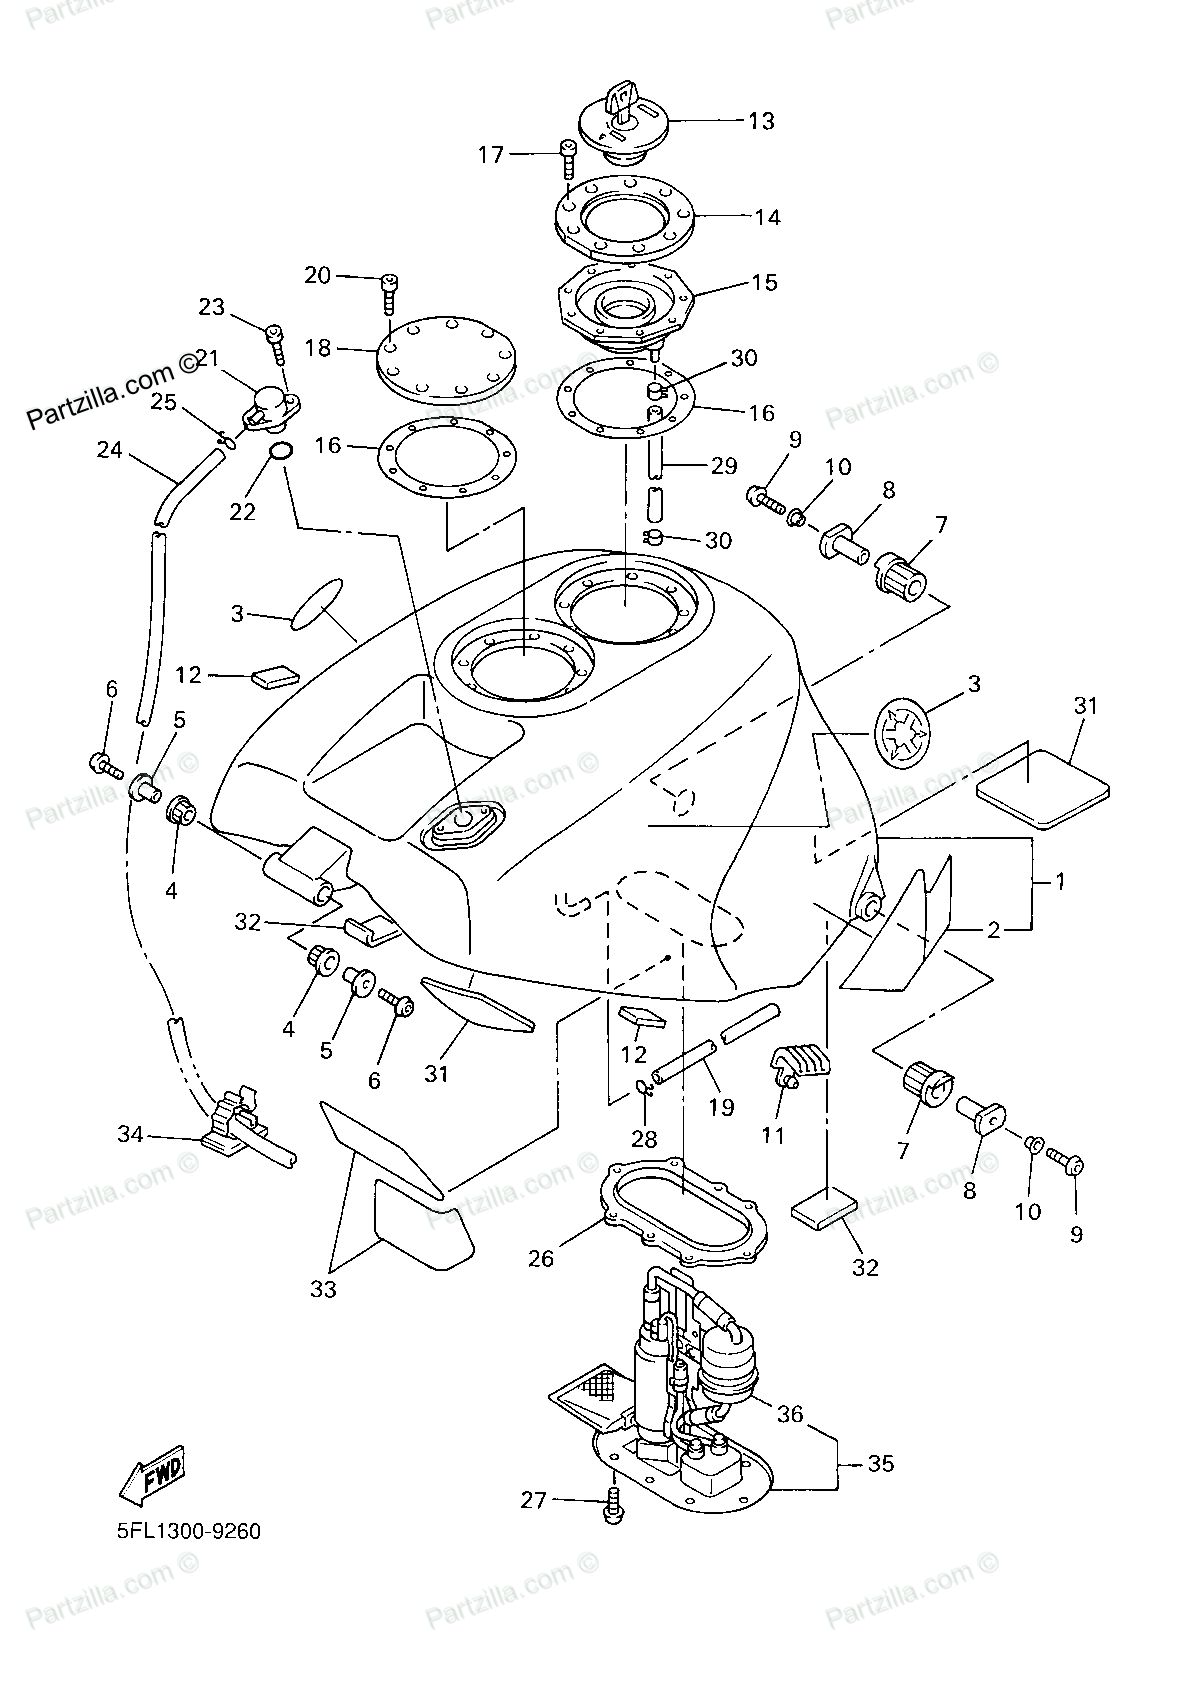 Diagram Of Yamaha Motorcycle Parts Yzfr7